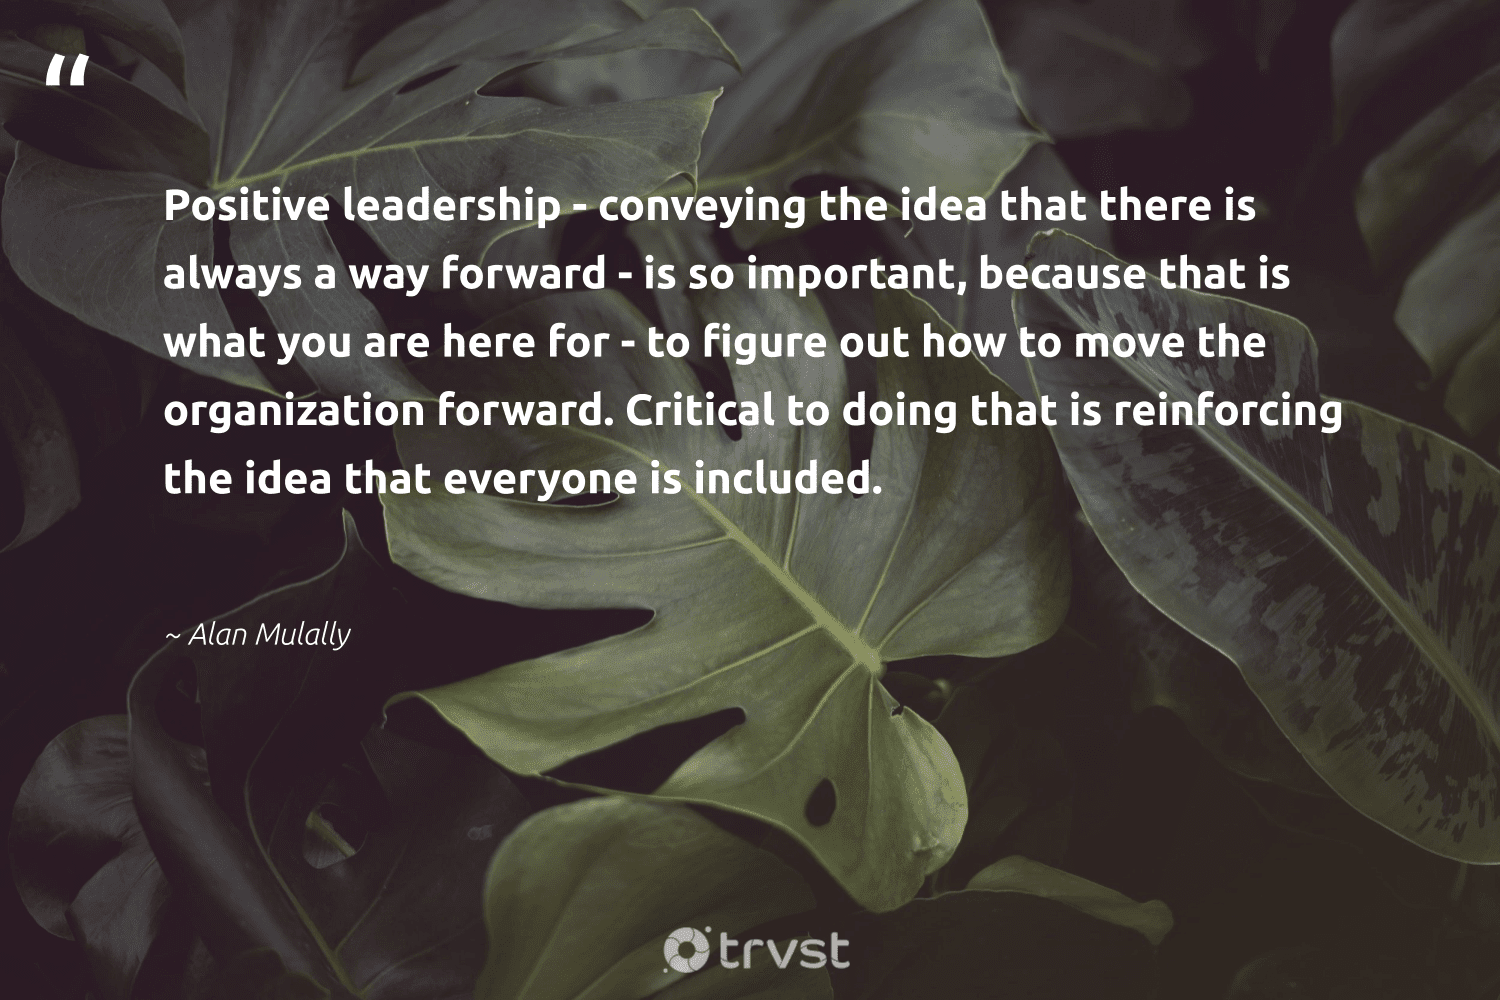 """""""Positive leadership - conveying the idea that there is always a way forward - is so important, because that is what you are here for - to figure out how to move the organization forward. Critical to doing that is reinforcing the idea that everyone is included.""""  - Alan Mulally #trvst #quotes #leadership #leadershipdevelopment #begreat #nevergiveup #collectiveaction #leadershipqualities #futureofwork #softskills #dogood #leadershipskills"""